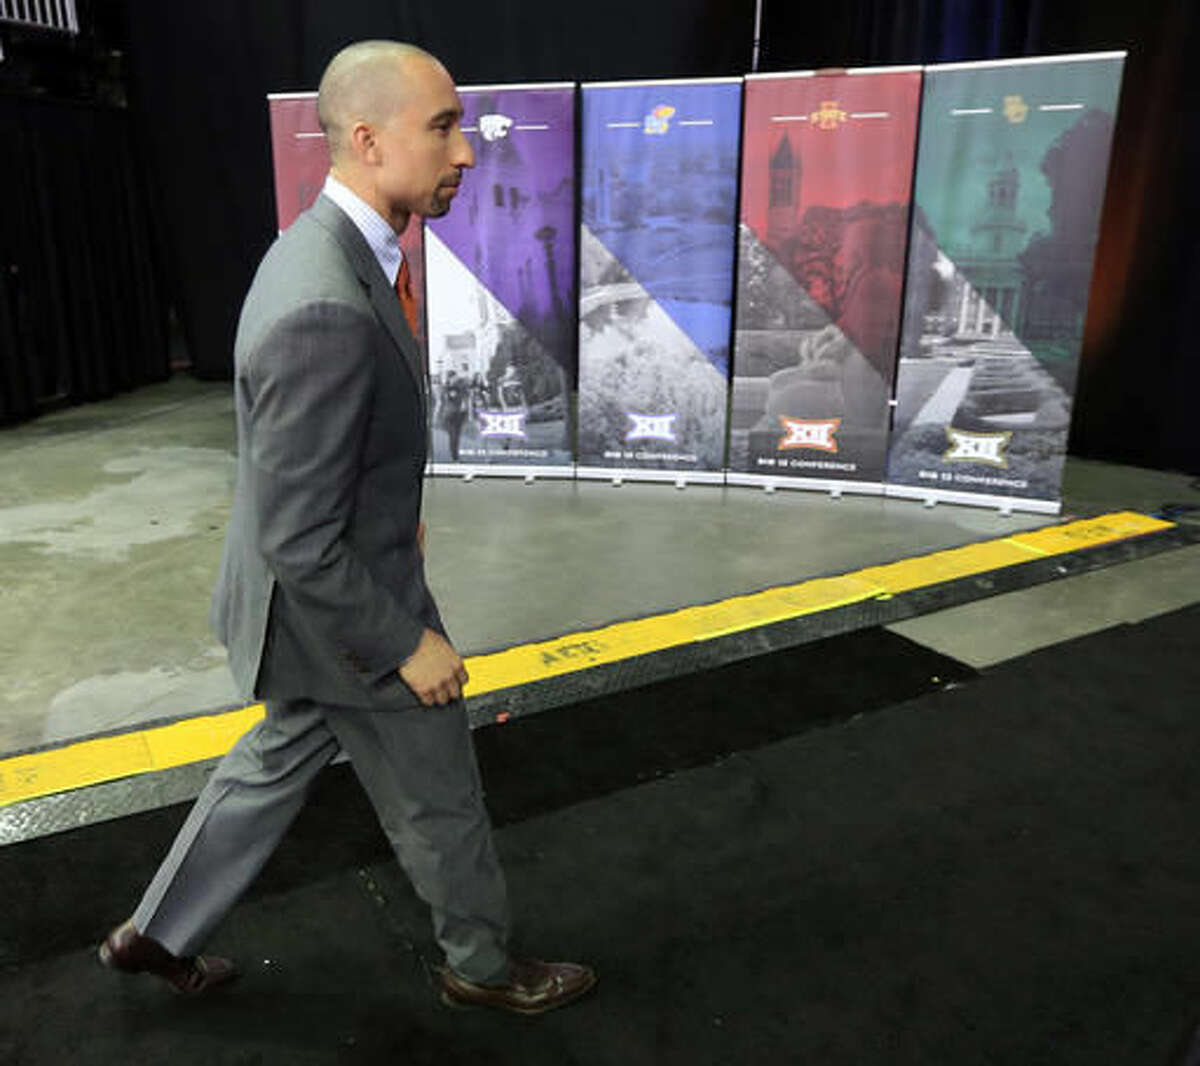 Texas coach Shaka Smart walks to a news conference during Big 12 NCAA college basketball media day in Kansas City, Mo., Tuesday, Oct. 25, 2016. (AP Photo/Orlin Wagner)